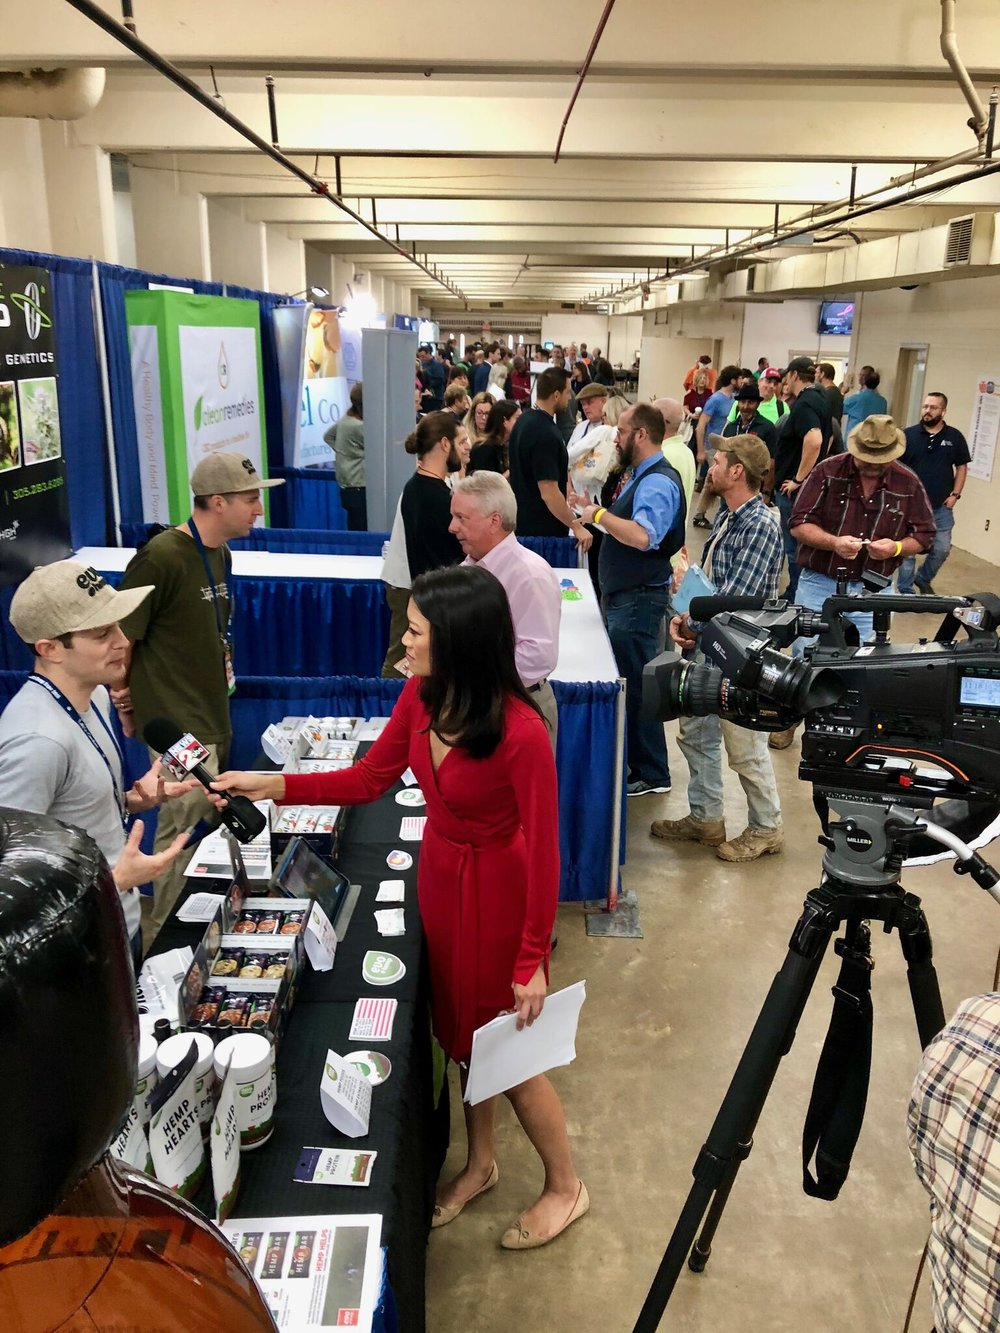 Ari Sherman of Evo Hemp is interviewed by Linda Ong at ABC 2 News in one of the many buzzing exhibition halls.